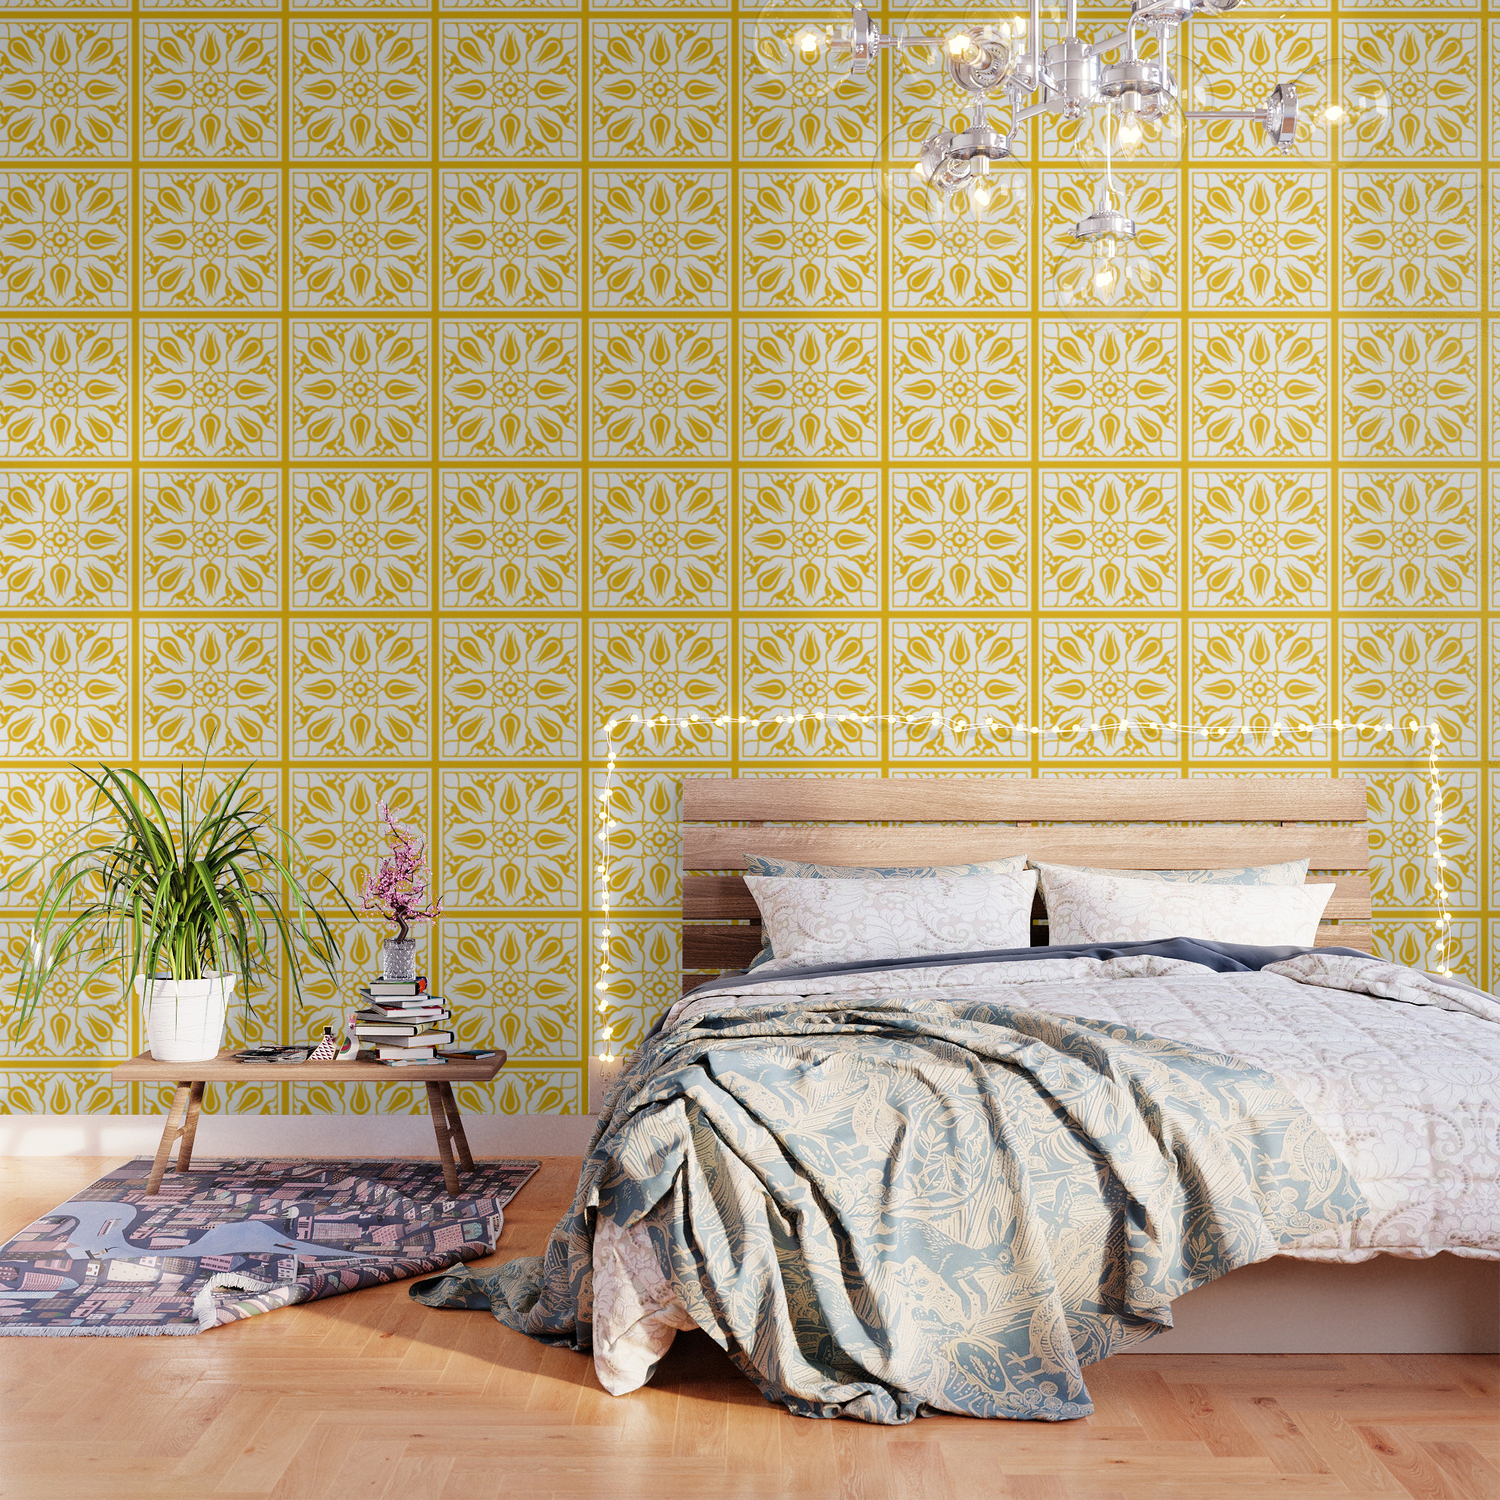 Yellow Turkish Traditional Floral Tile Art Wallpaper By Nsprints